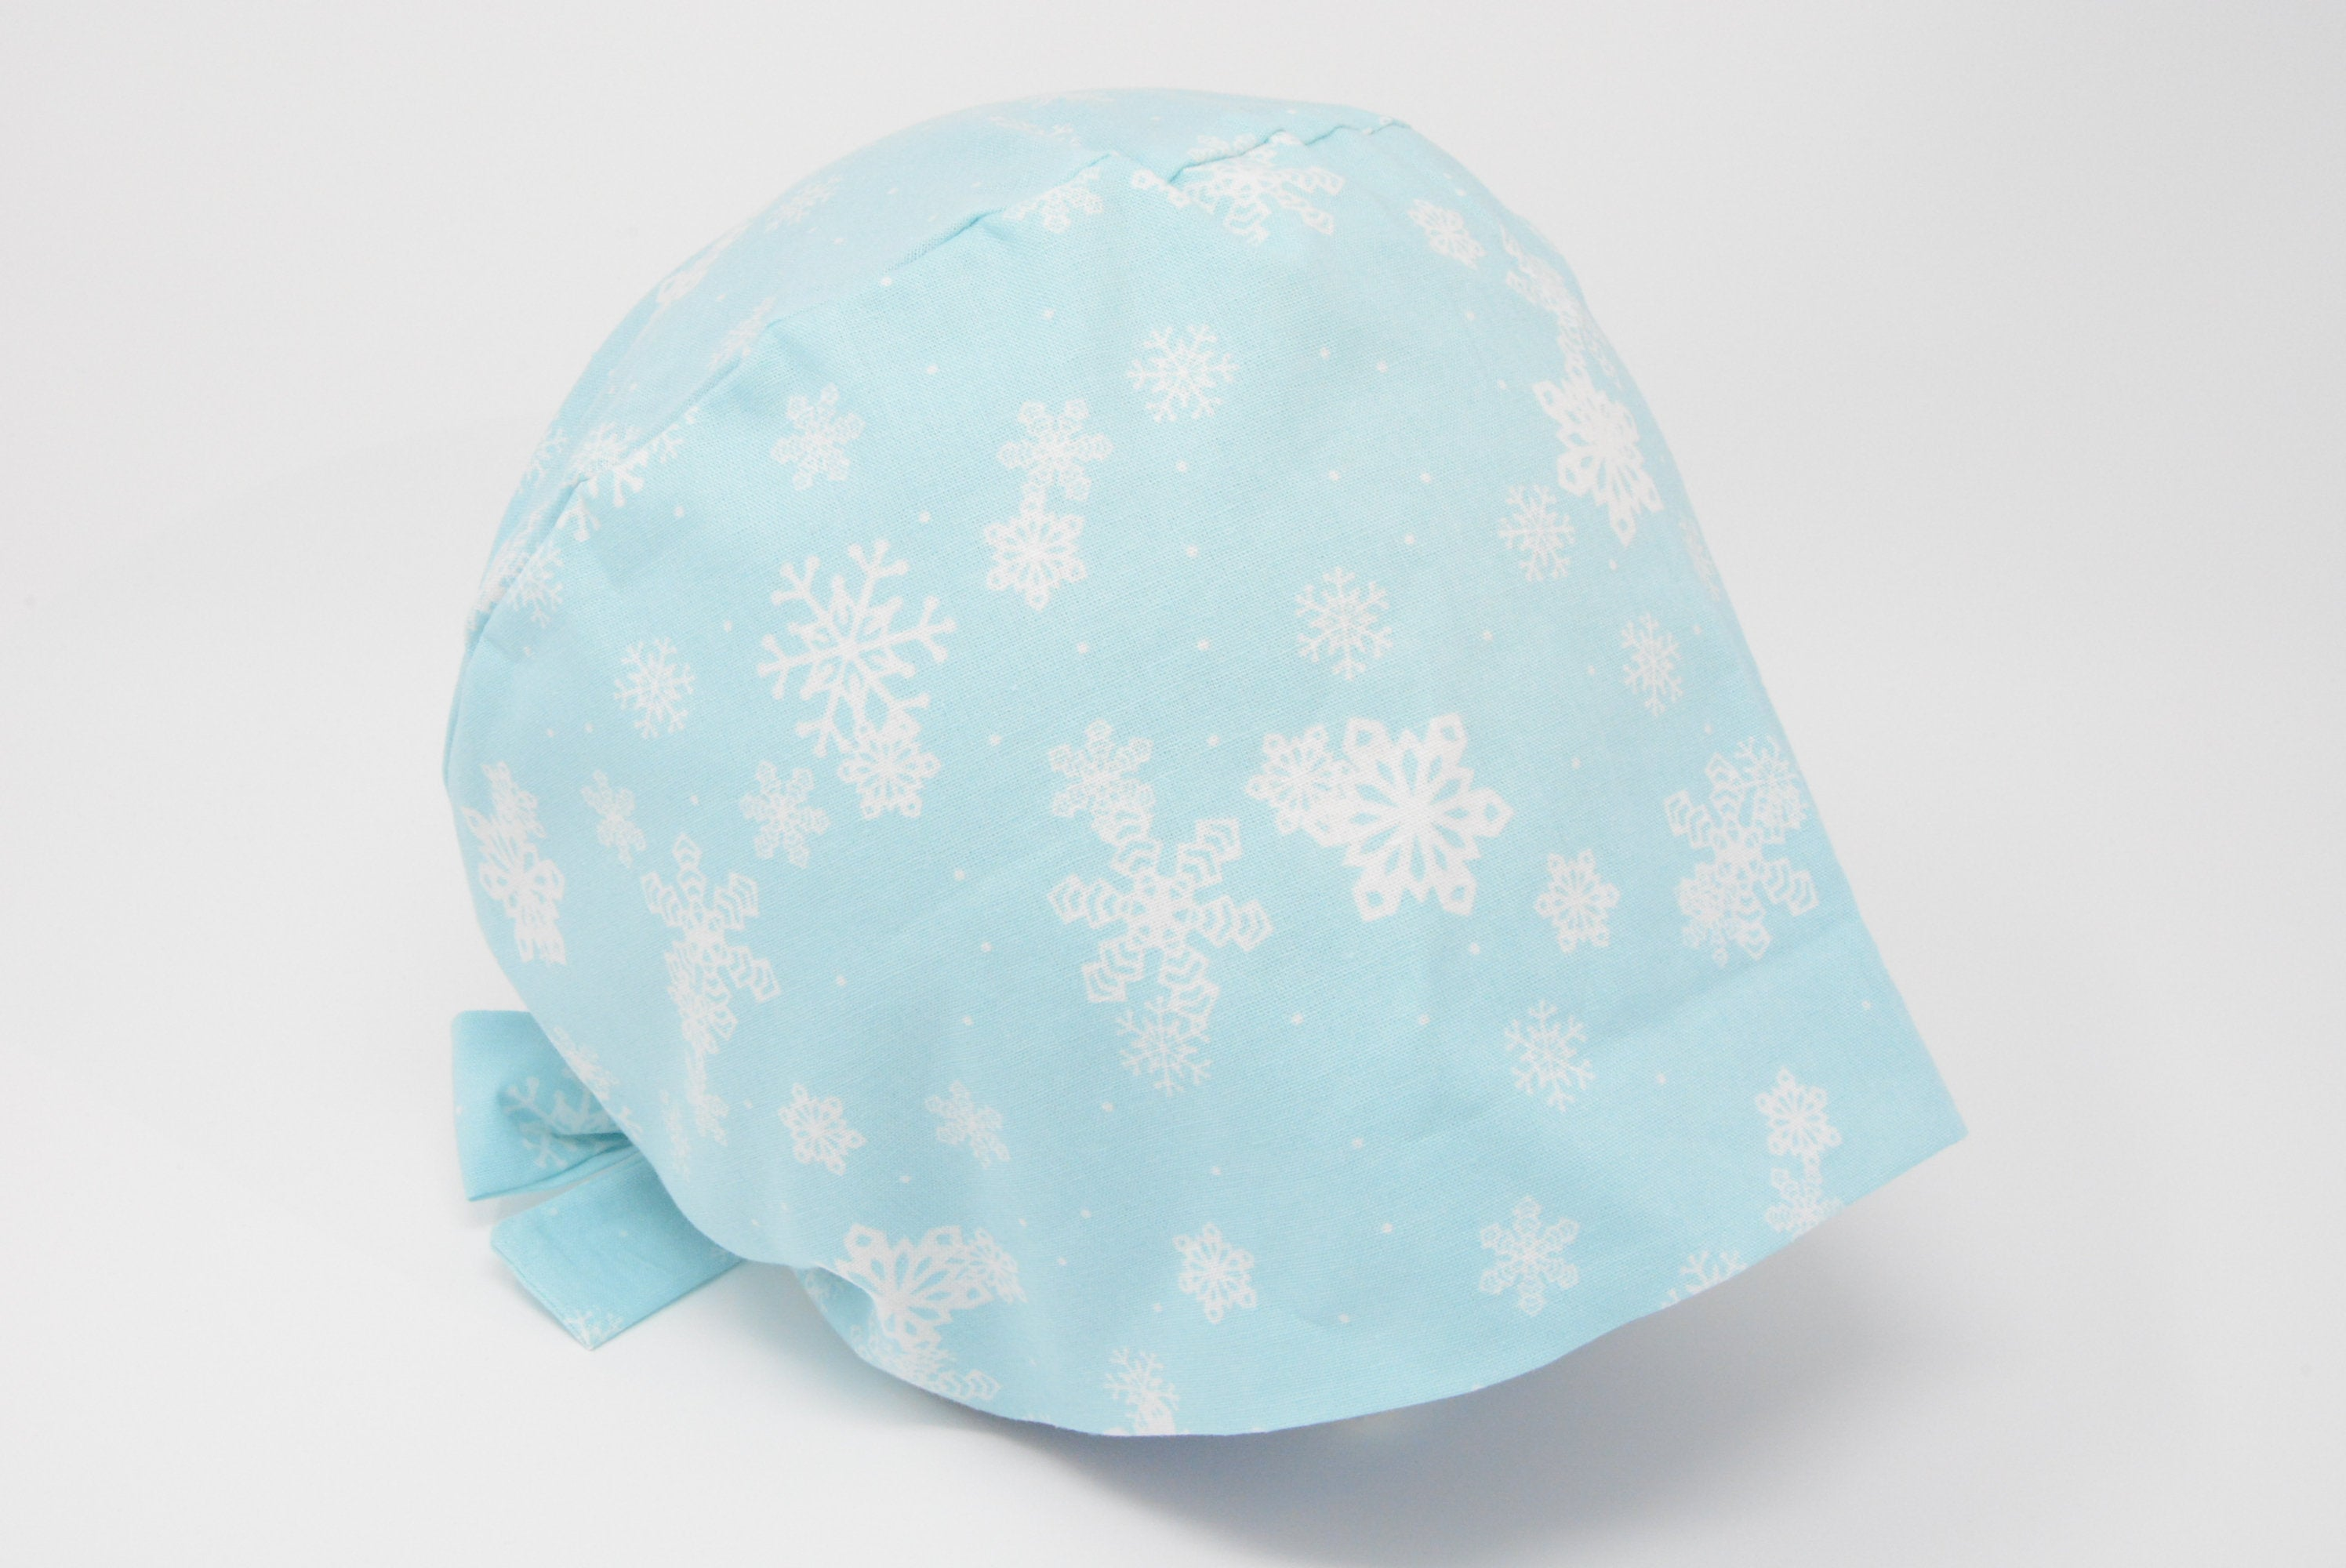 Christmas Snowflakes on Sky Blue